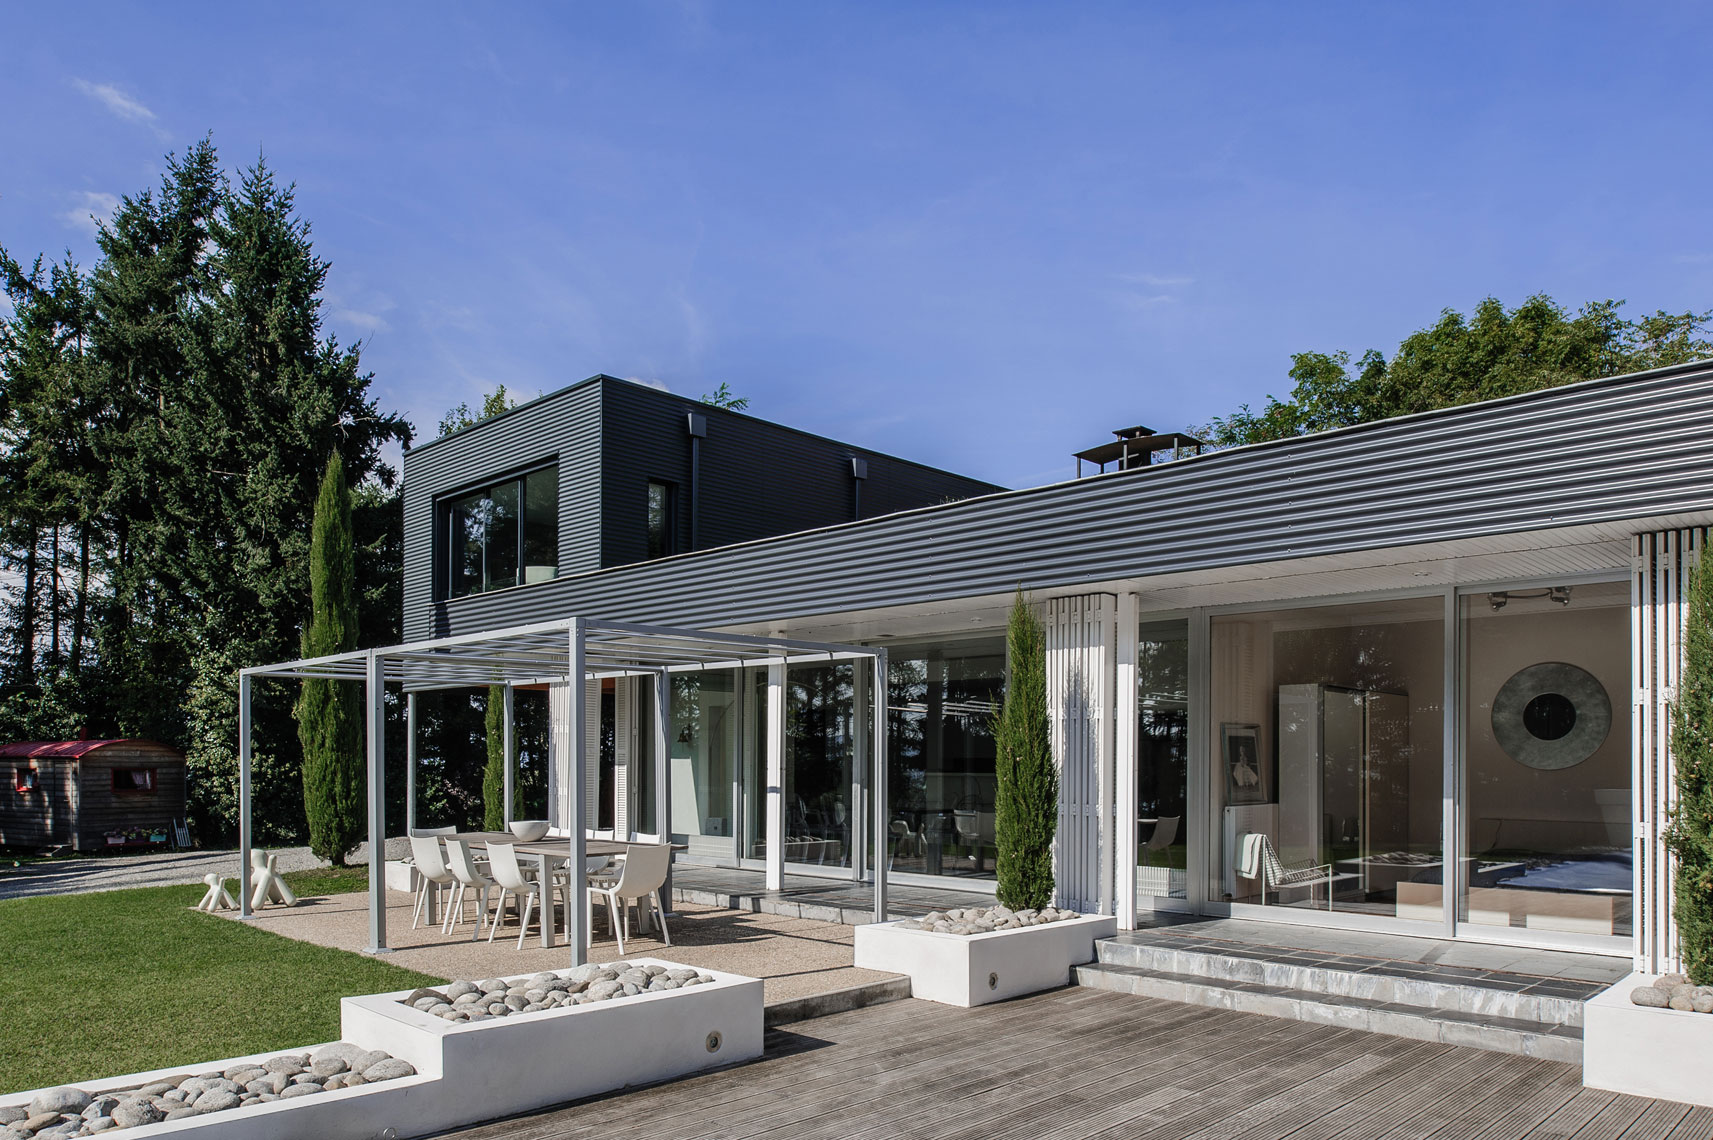 The-Metal-House---victor-perez-architecture-photographer-05.jpg